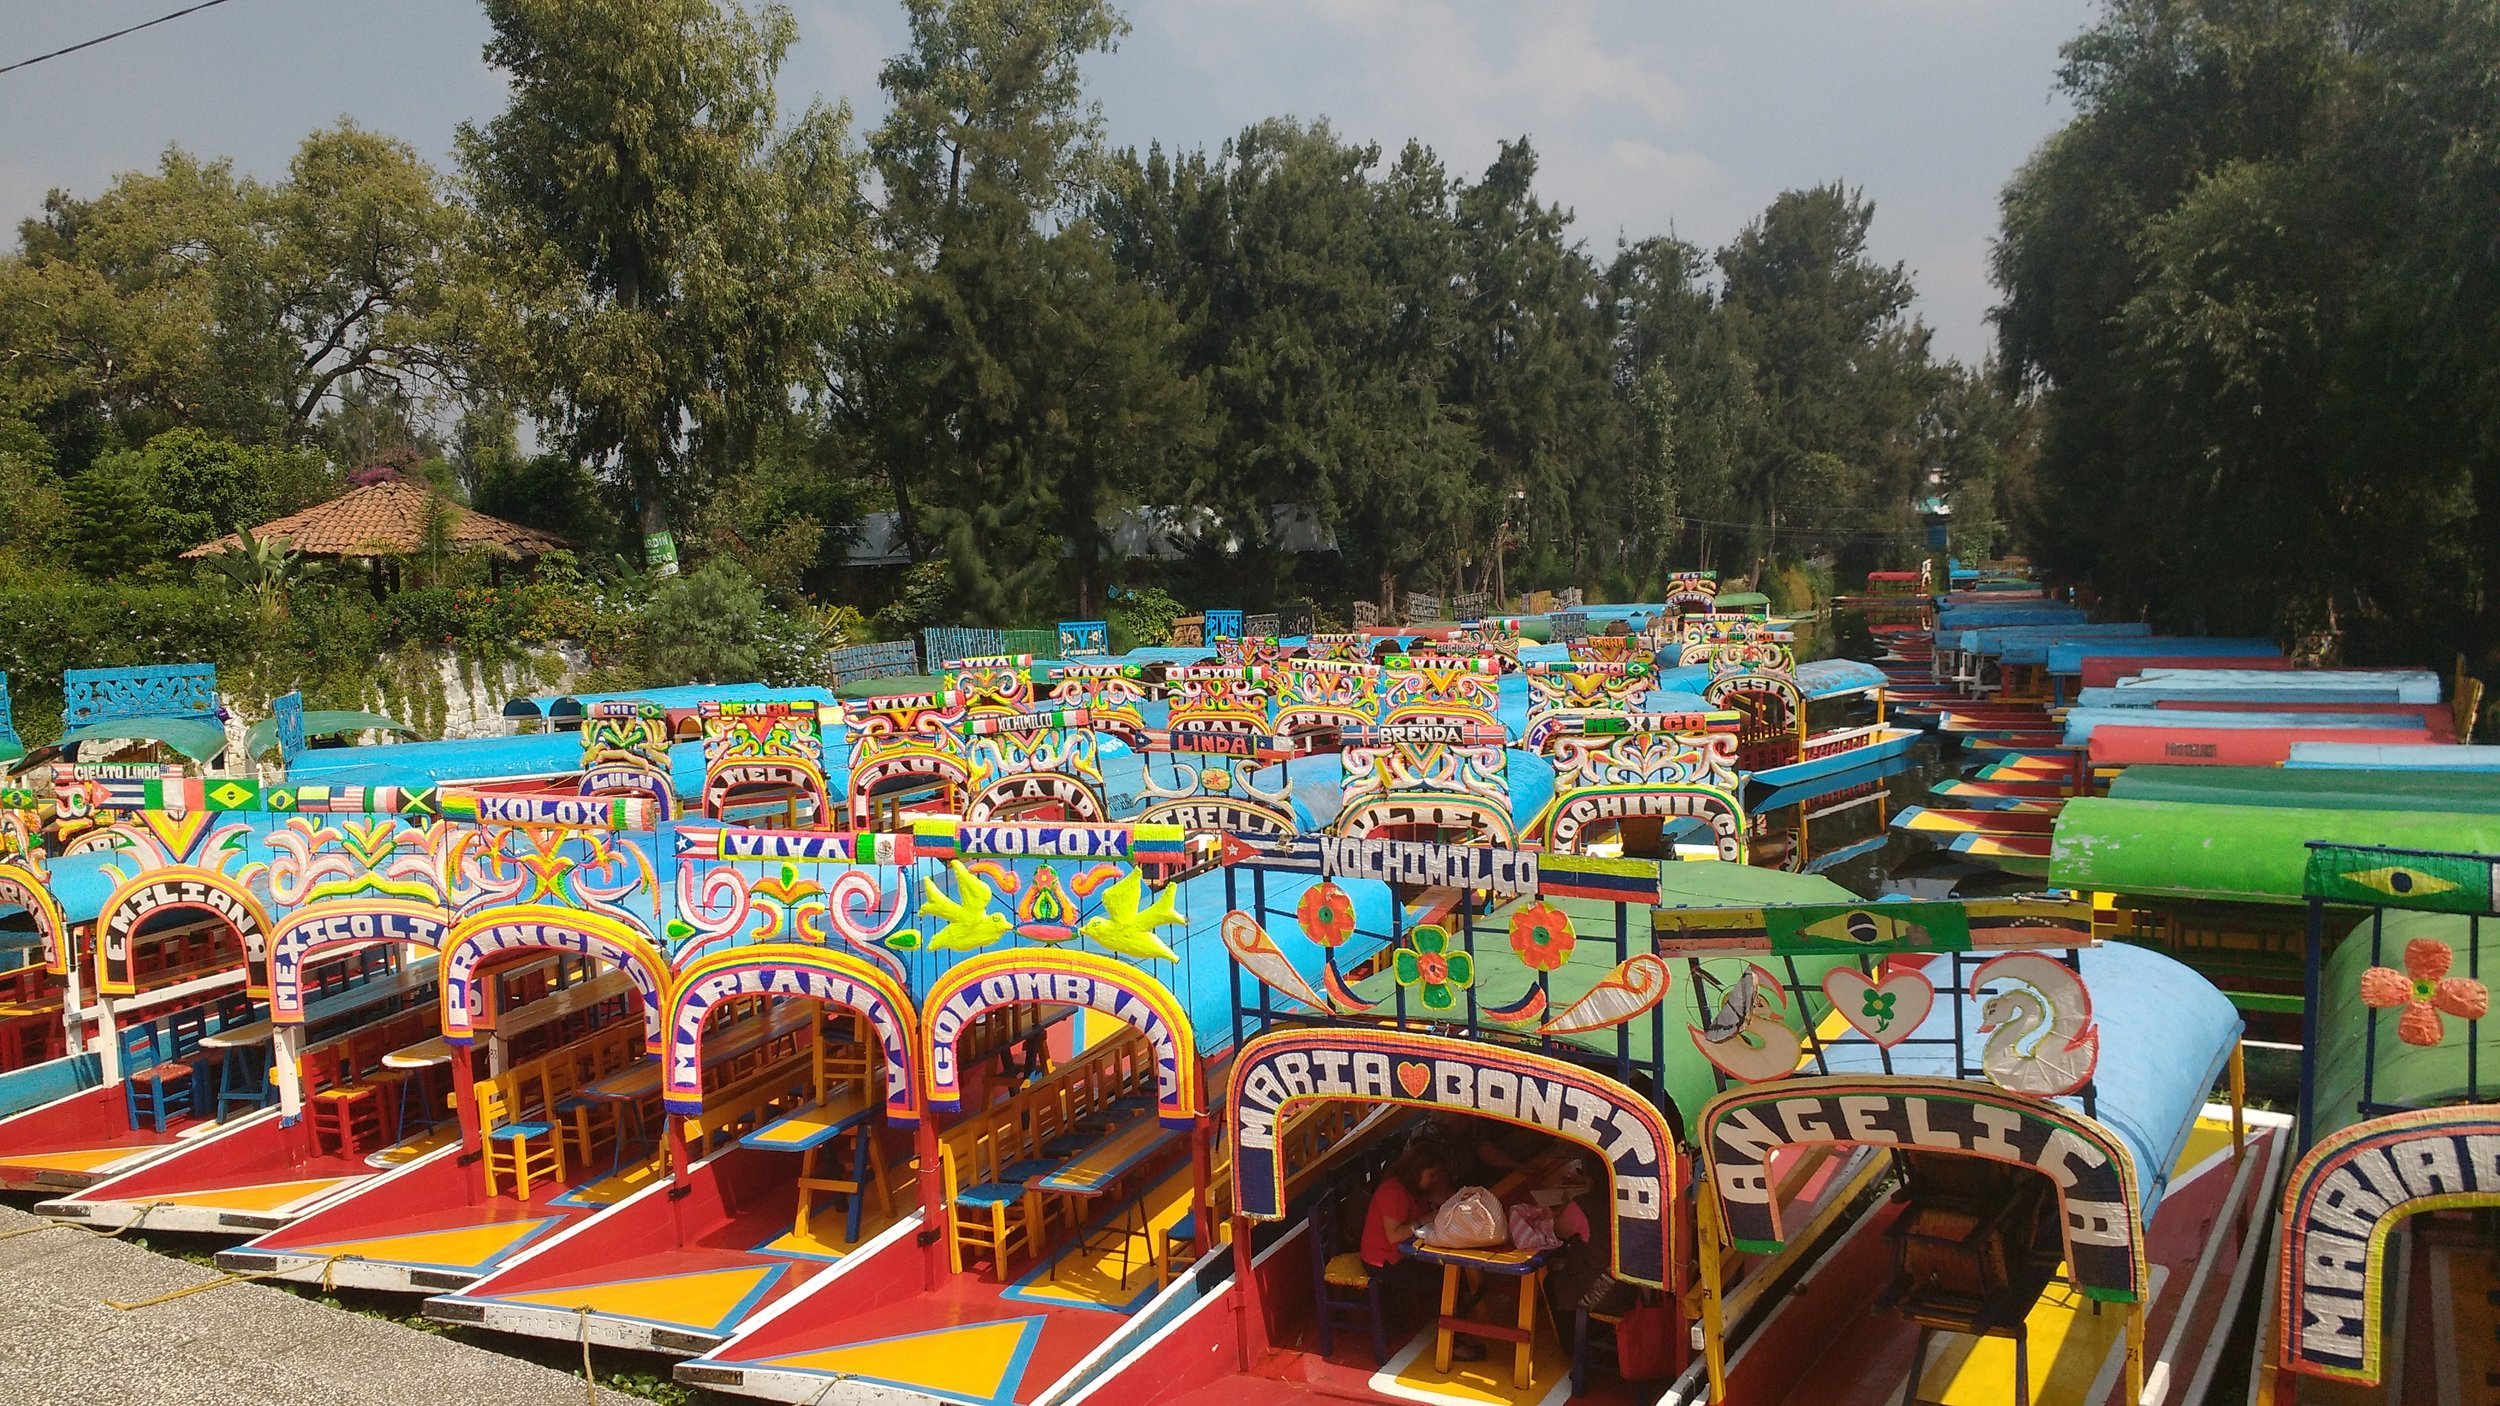 One of the best things to do in Mexico City is taking a gondola ride in the district known as Xochimilco